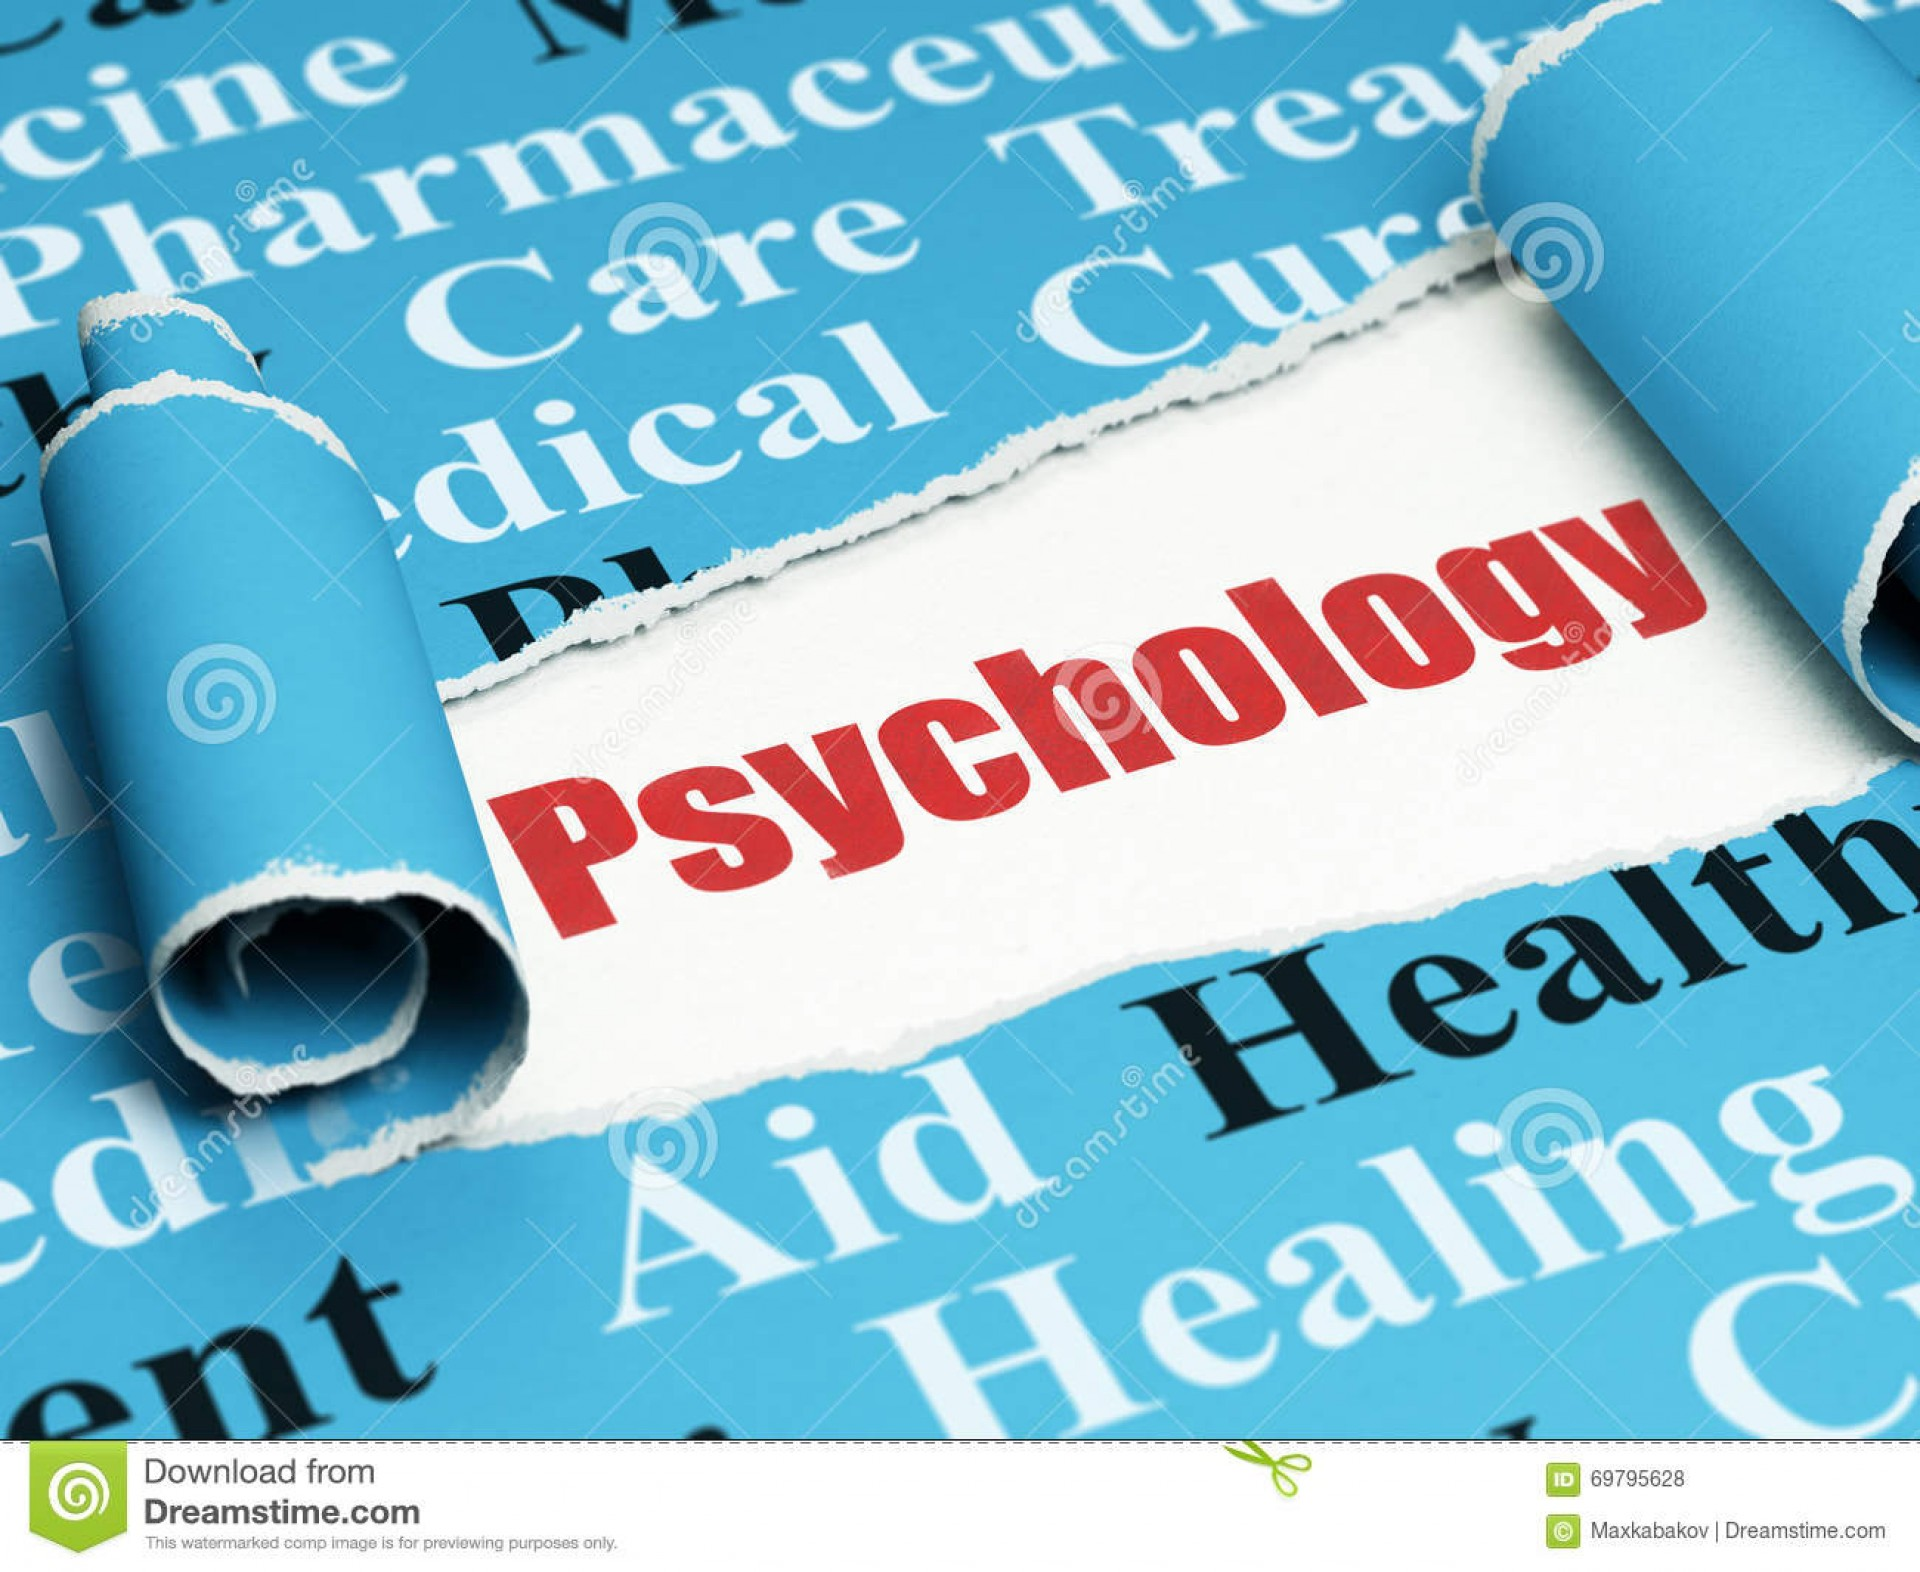 010 Research Paper Psychology On Dreams Health Concept Red Text Under Piece Torn Curled Blue Tag Cloud Rendering Singular Articles 2017 1920